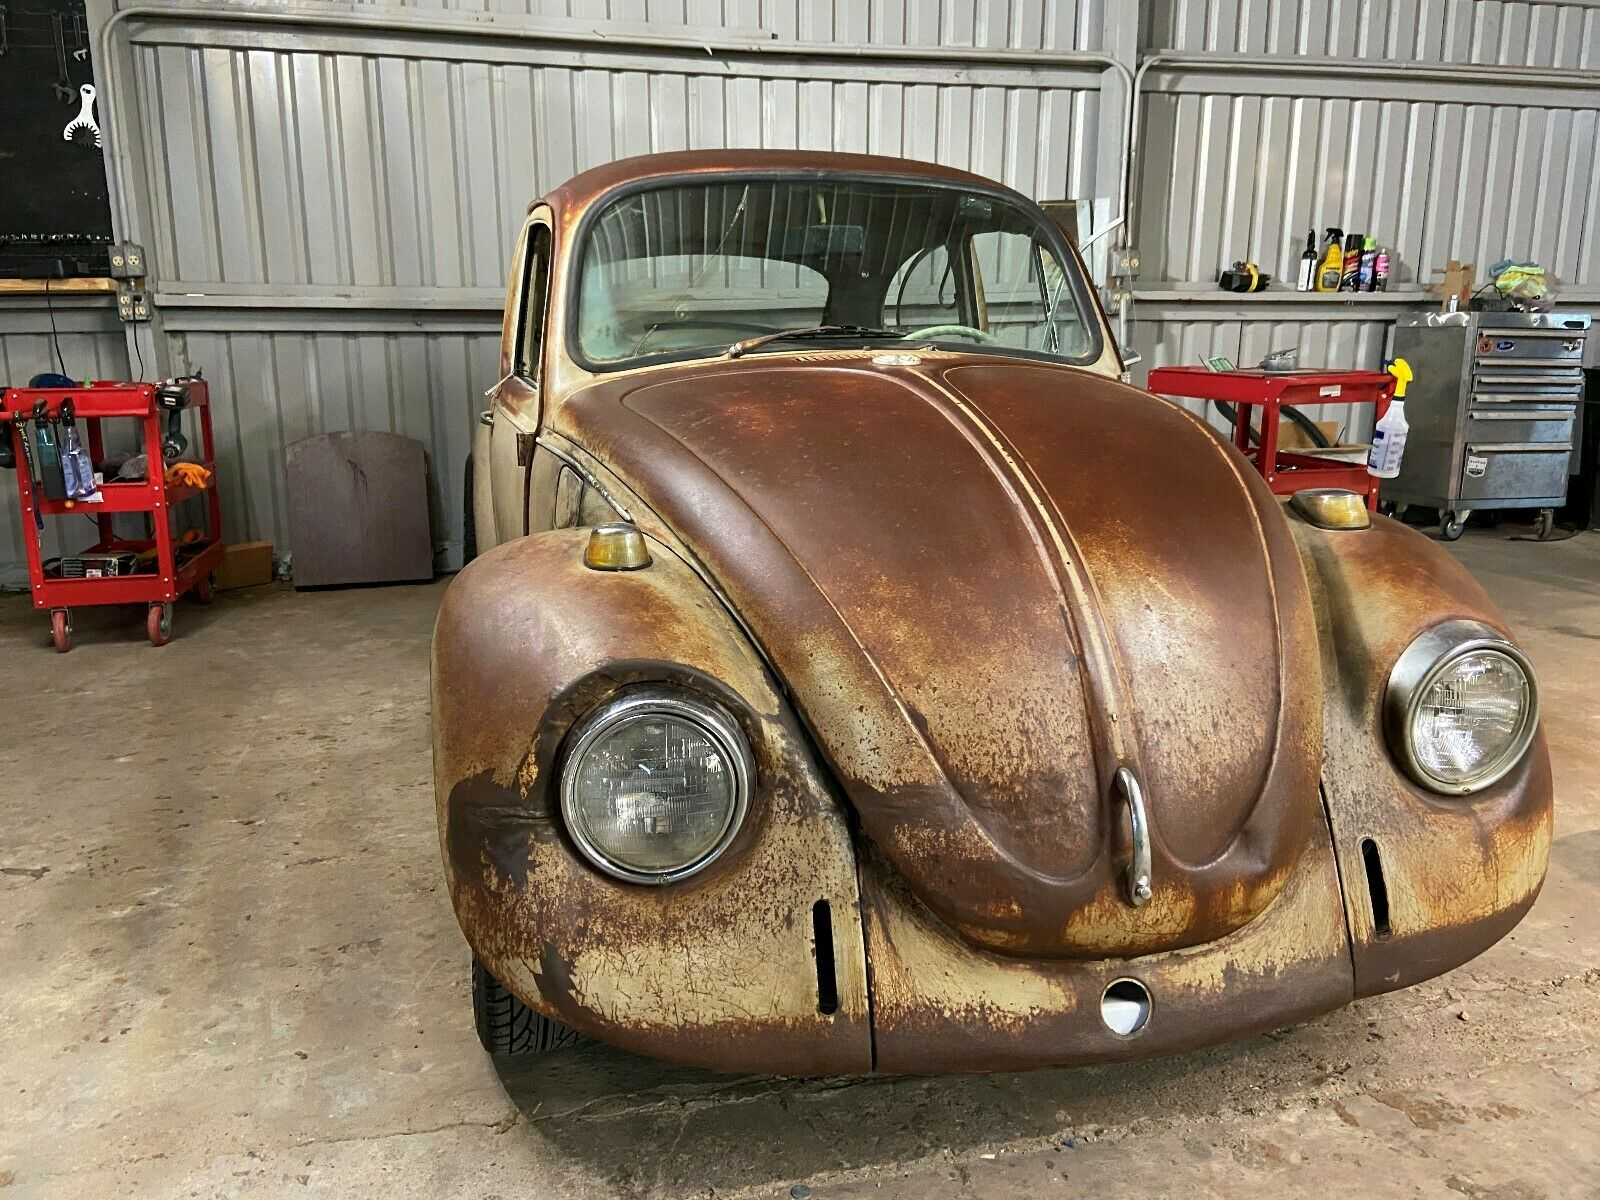 Volkswagen VW Air Cooled Beetle Bug For Sale Houston TX Wolfsmiths Heights